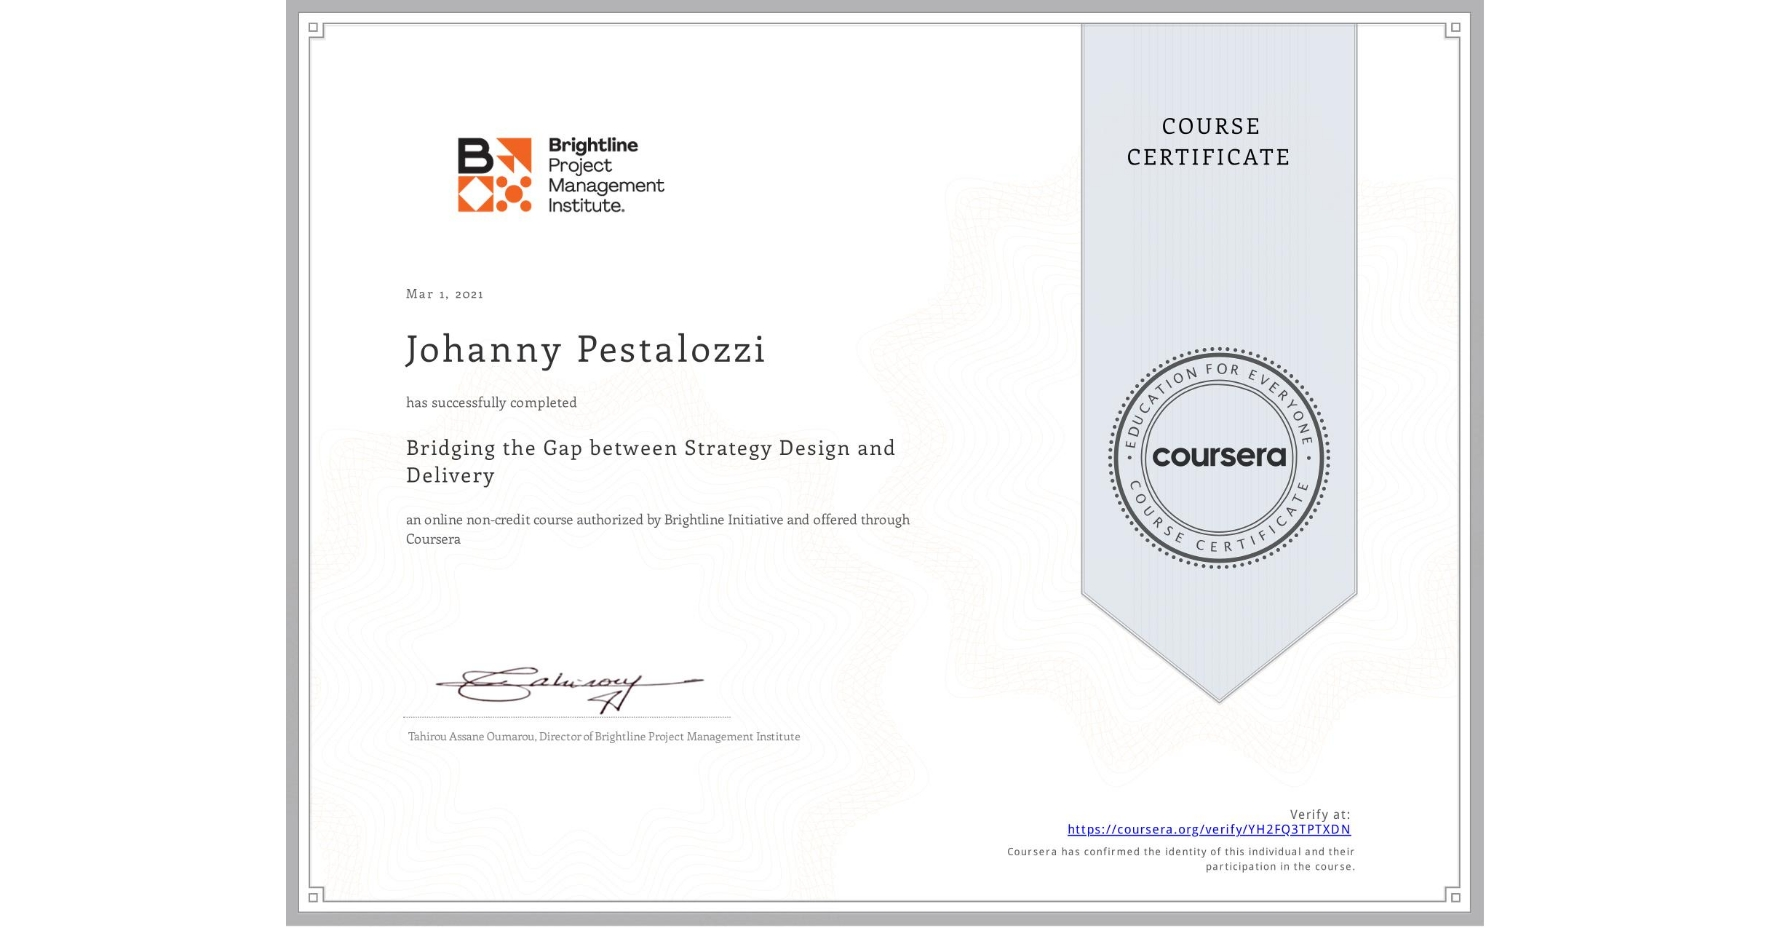 View certificate for Johanny Pestalozzi, Bridging the Gap between Strategy Design and Delivery, an online non-credit course authorized by Brightline Initiative and offered through Coursera